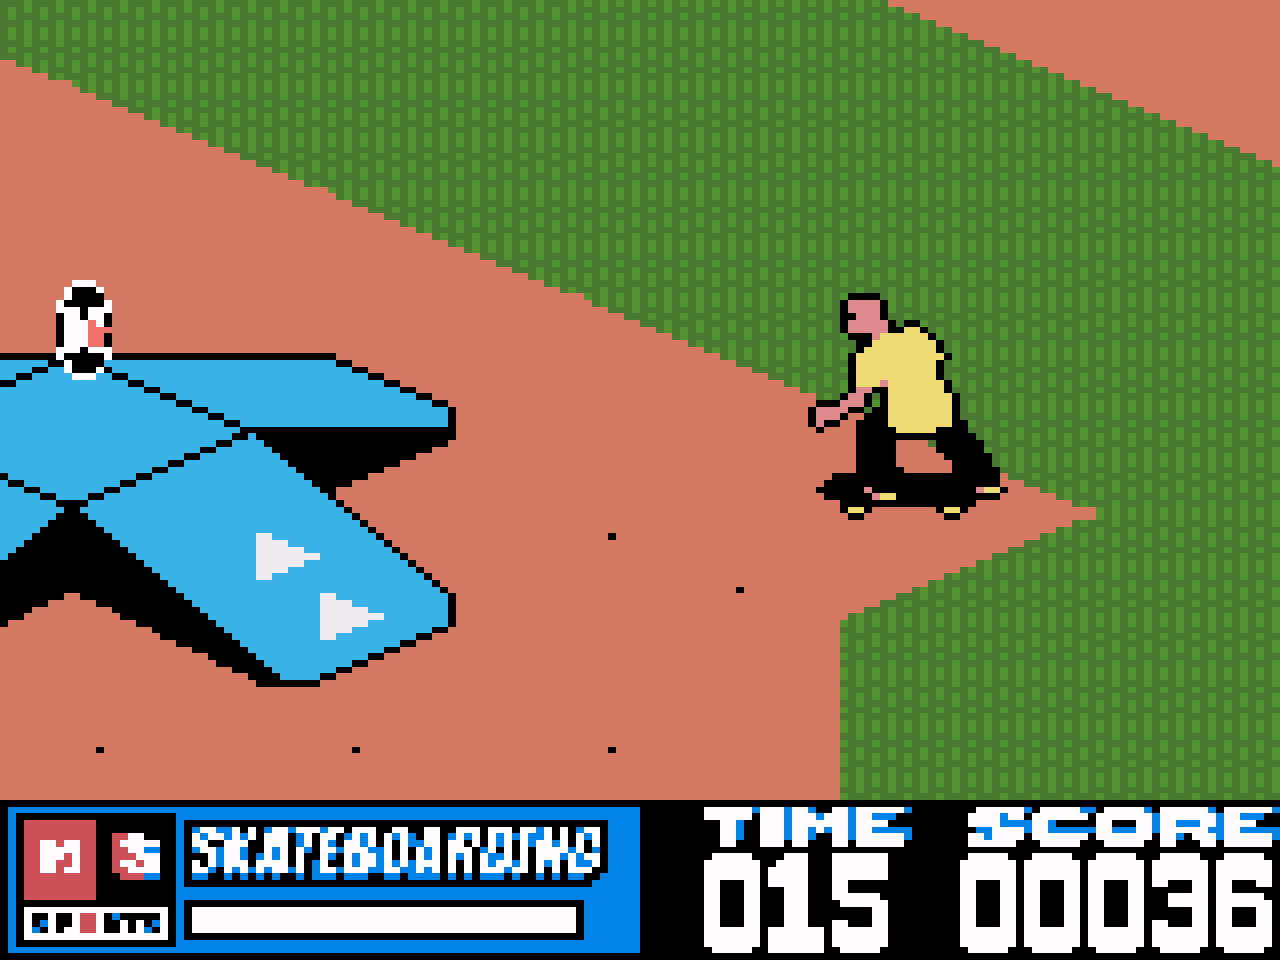 https://s3.eu-west-3.amazonaws.com/games.anthony-dessalles.com/MTV Sports Skateboarding featuring Andy MacDonald GBC 2020 - Screenshots/MTV Sports Skateboarding featuring Andy MacDonald-201115-140845.png